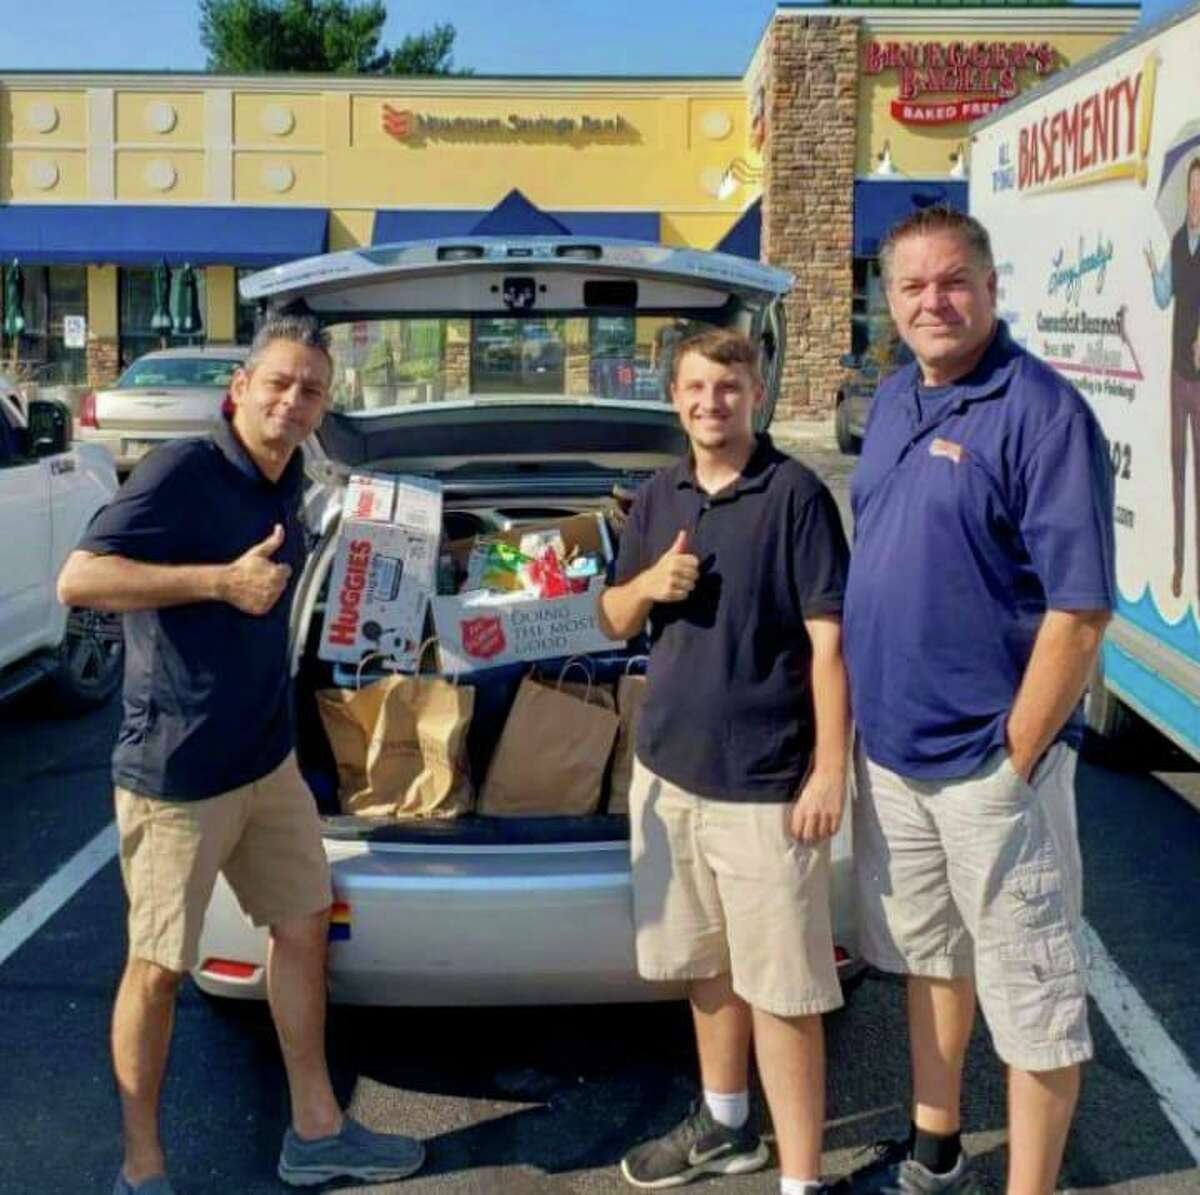 Envision Shelton Aldermen candidates David Gidwani, left, Matt McGee, center, and Chris Jones with donations - collected at a past donation drive - for the Shelton Animal Shelter. Gidwani is seeking reelection to the First Ward, while McGee and Jones are running in the Third Ward.